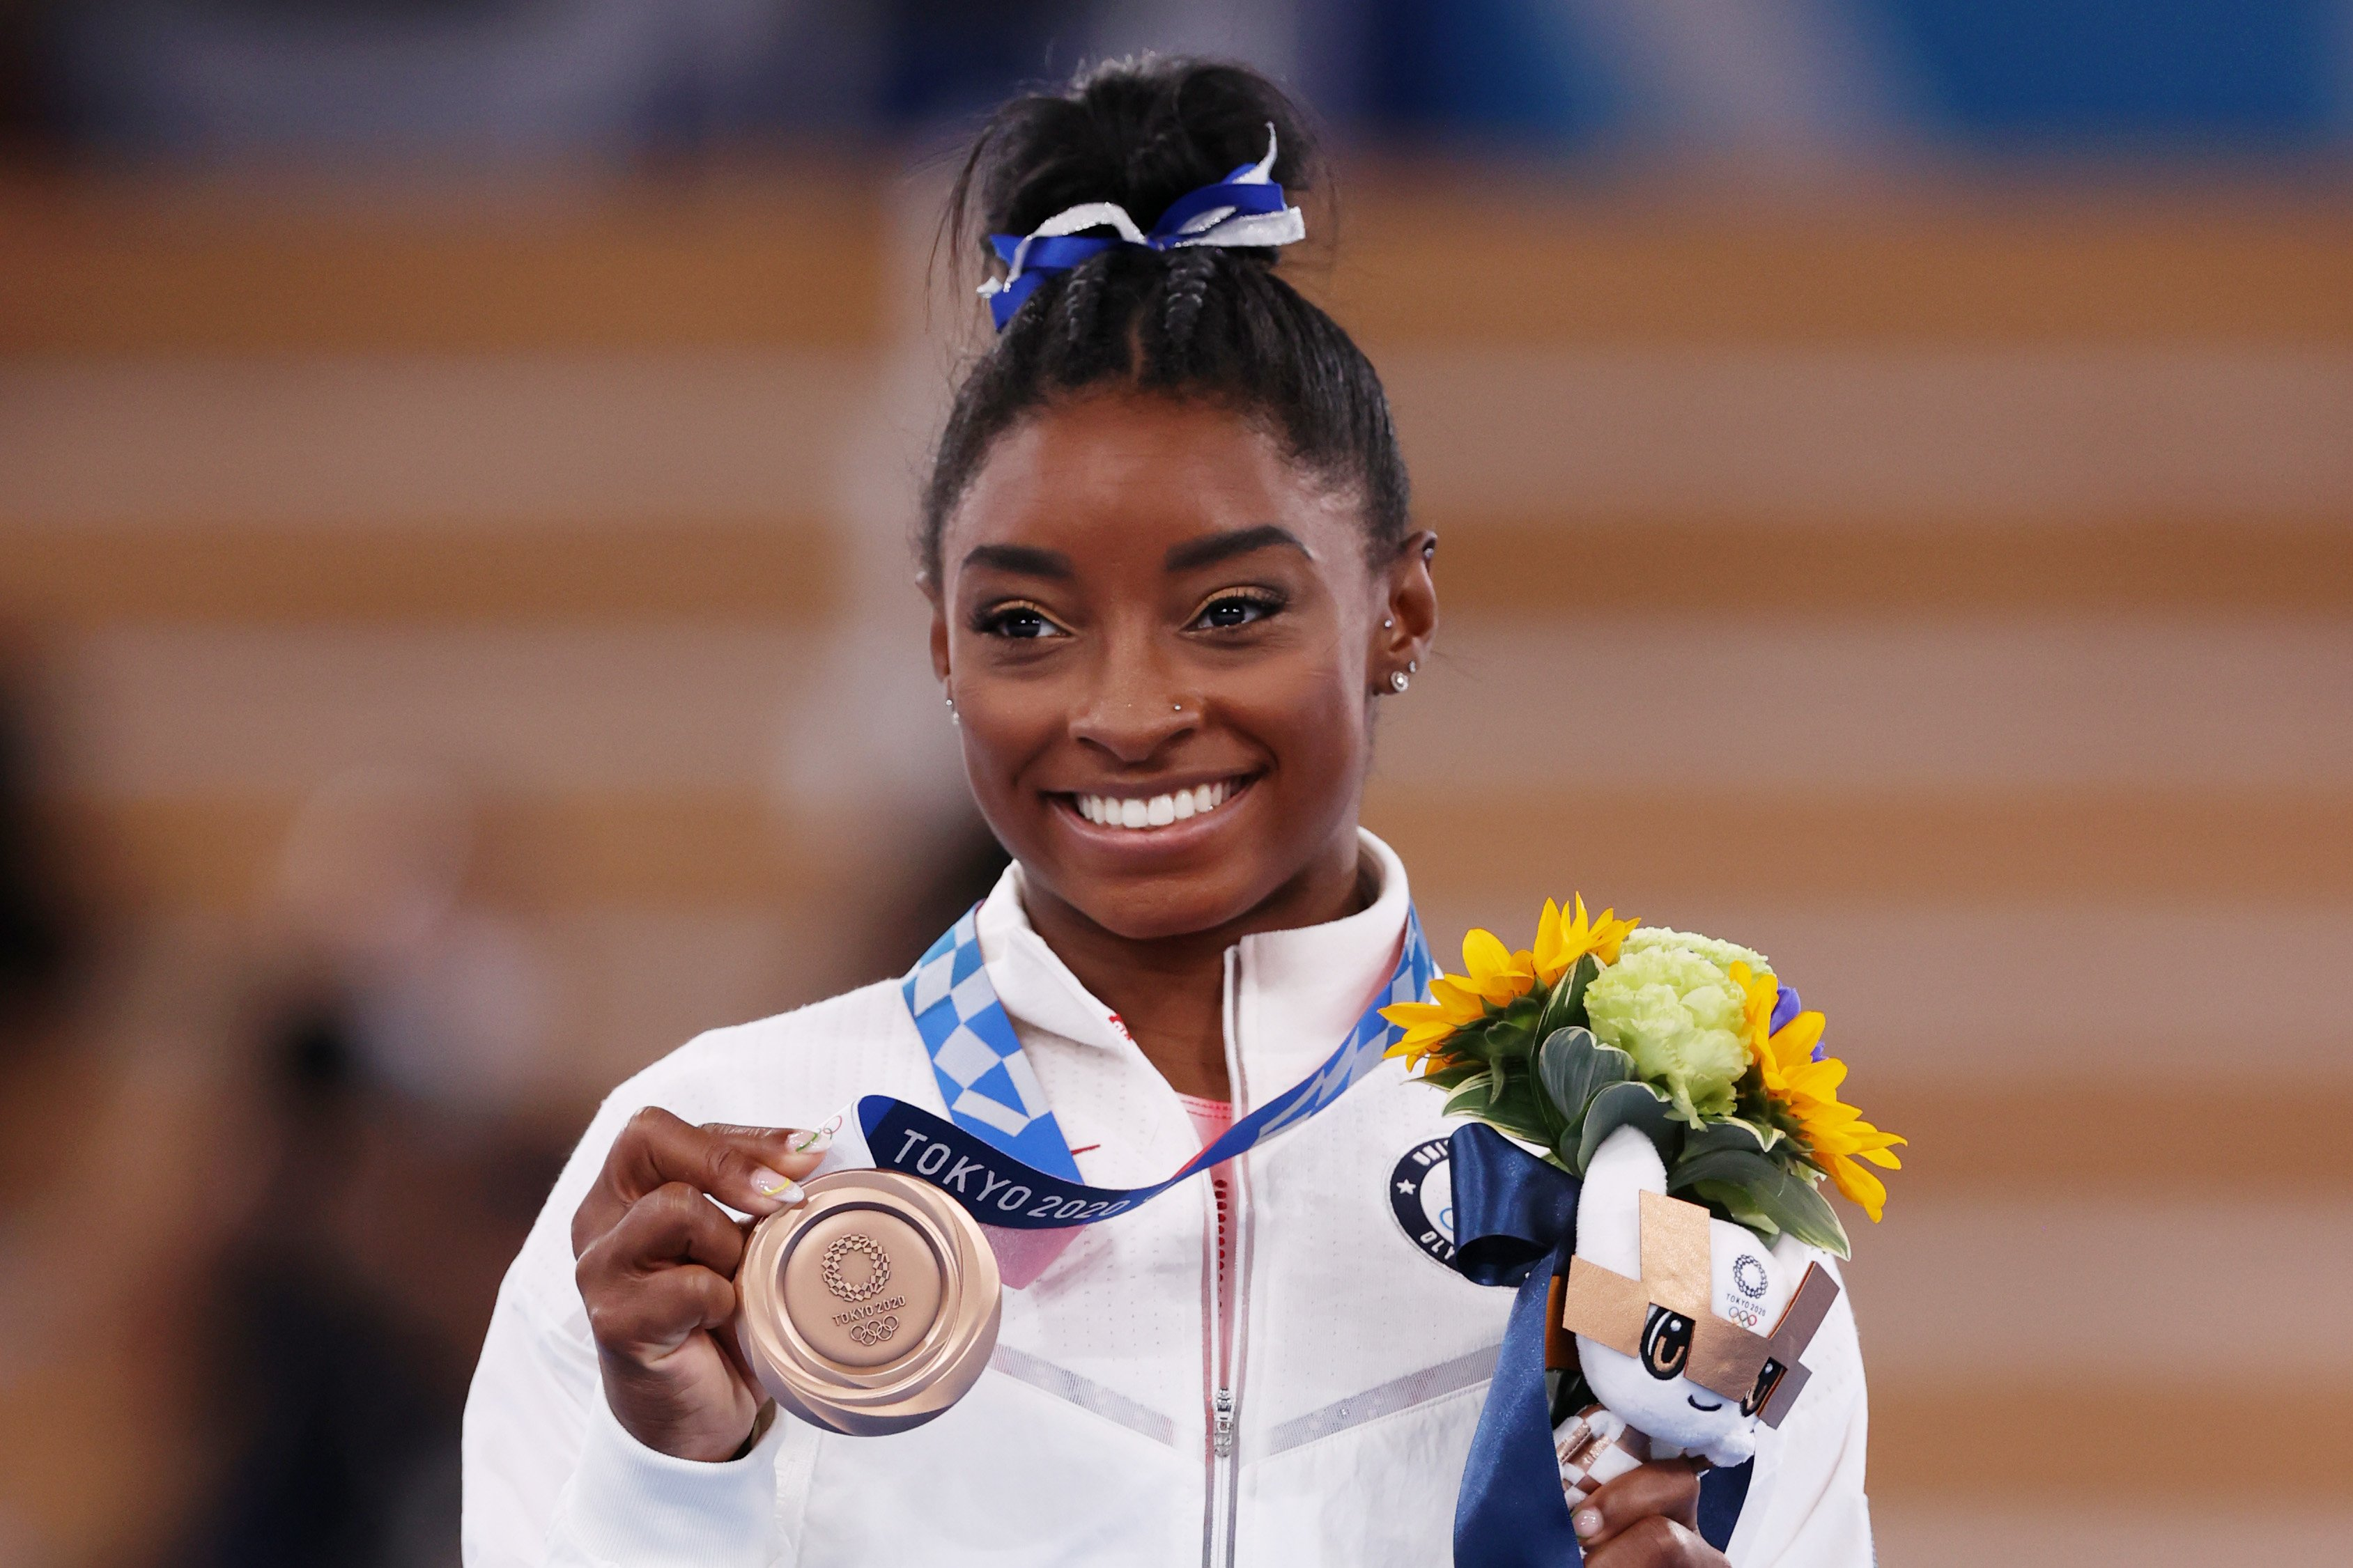 Simone Biles pictured with a bronze medal during the Women's Balance Beam Final medal ceremony in Tokyo 2020 Olympics on August 3, 2021 in Tokyo, Japan. | Photo: Getty Images